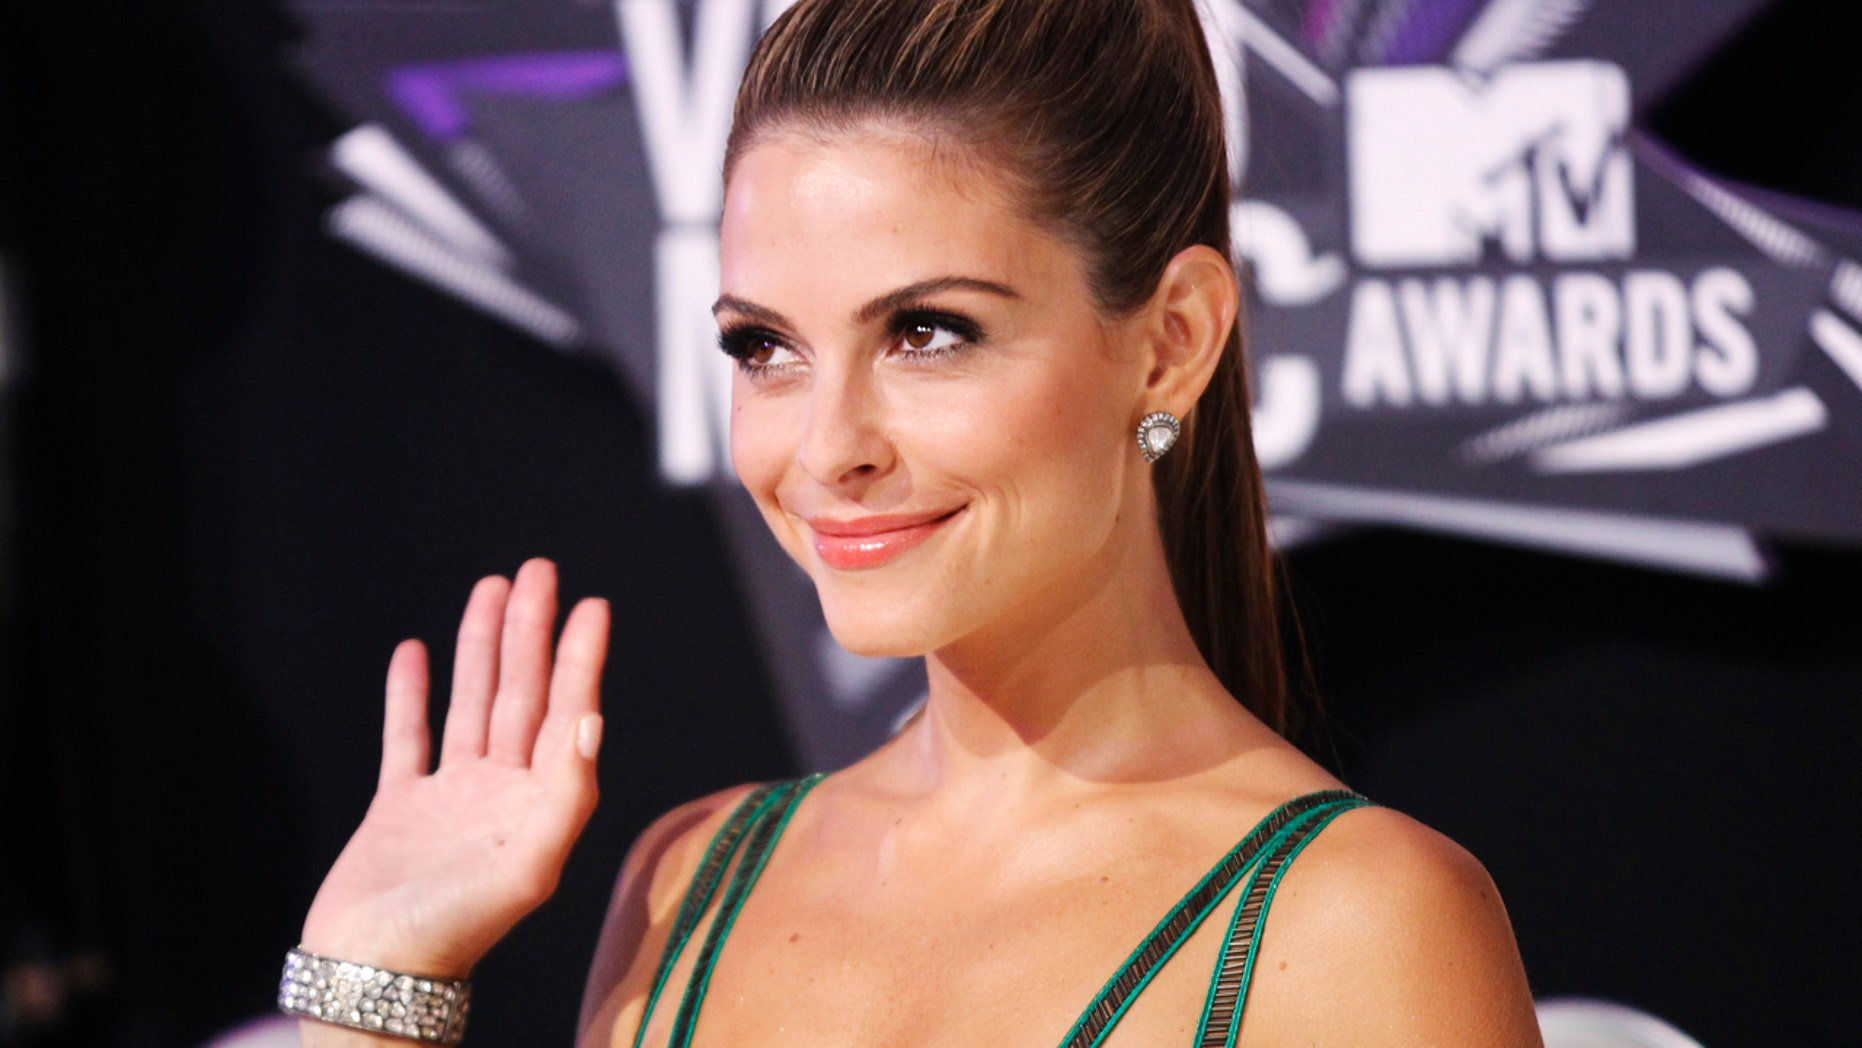 Maria Menounos opens up about health and a stressful life in the entertainment industry. Here Menounos arrives at the 2011 MTV Video Music Awards in Los Angeles.